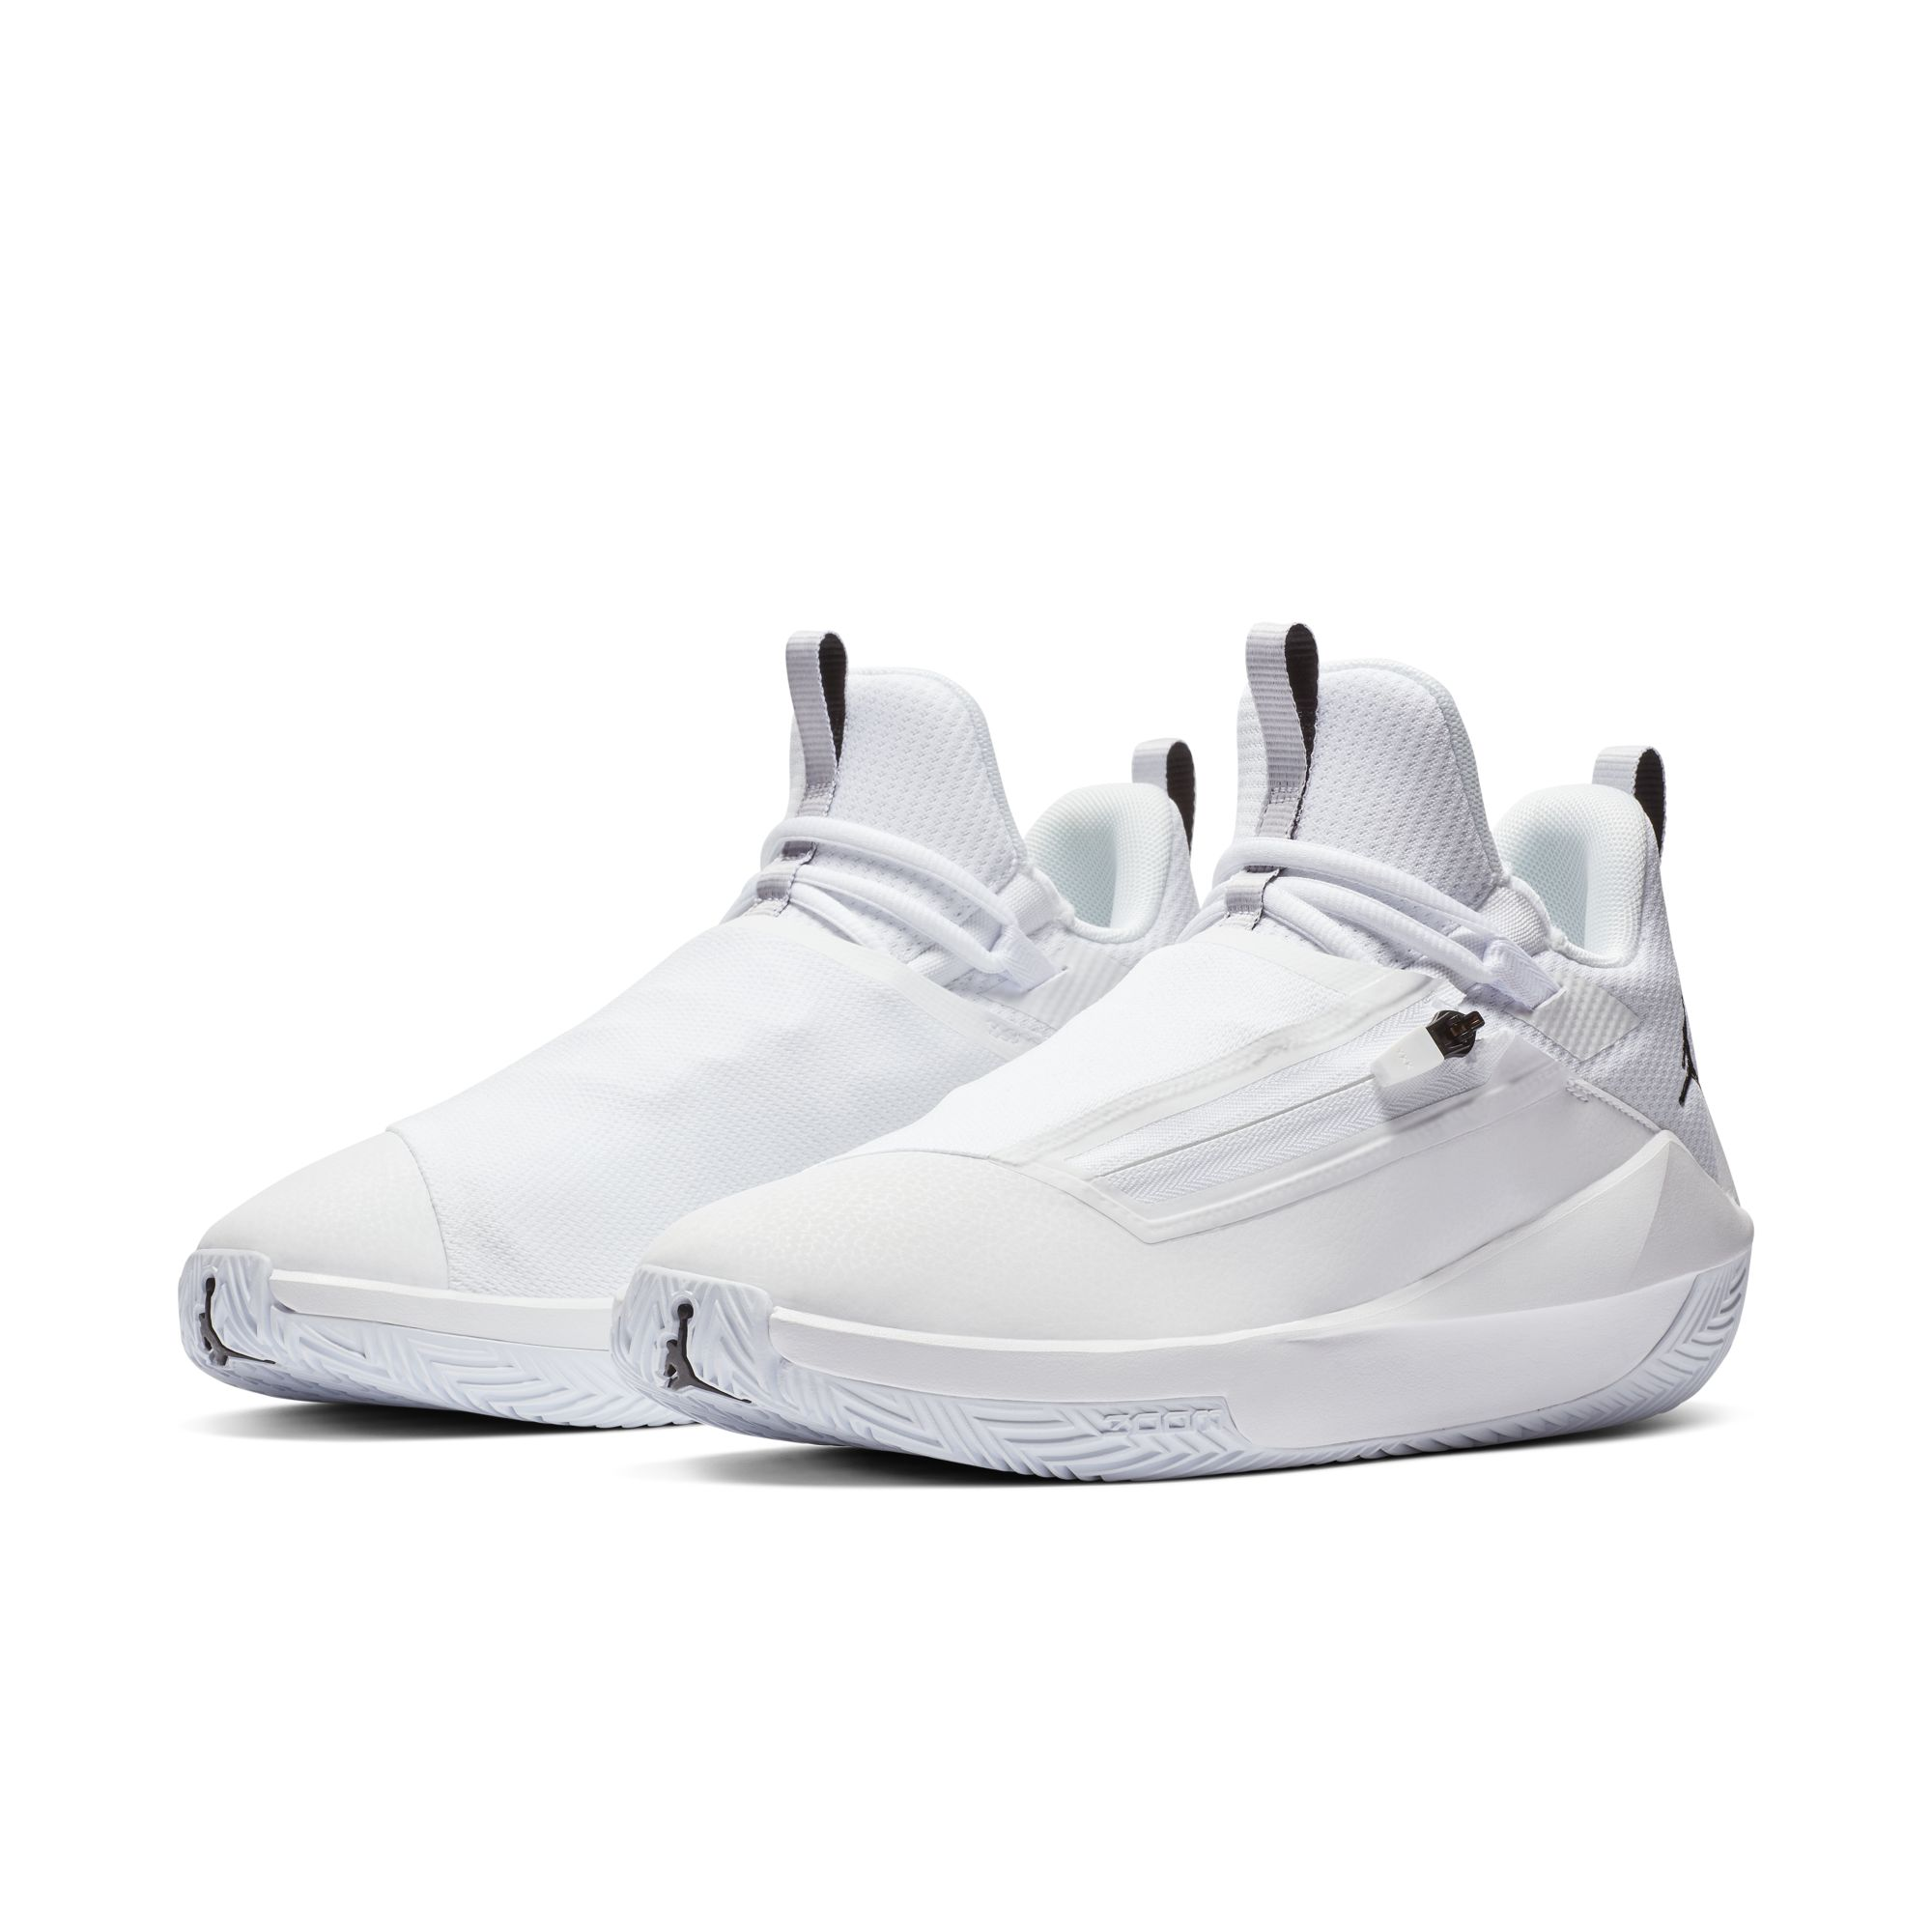 JORDAN JUMPMAN HUSTLE PF WHITE:BLACK 1